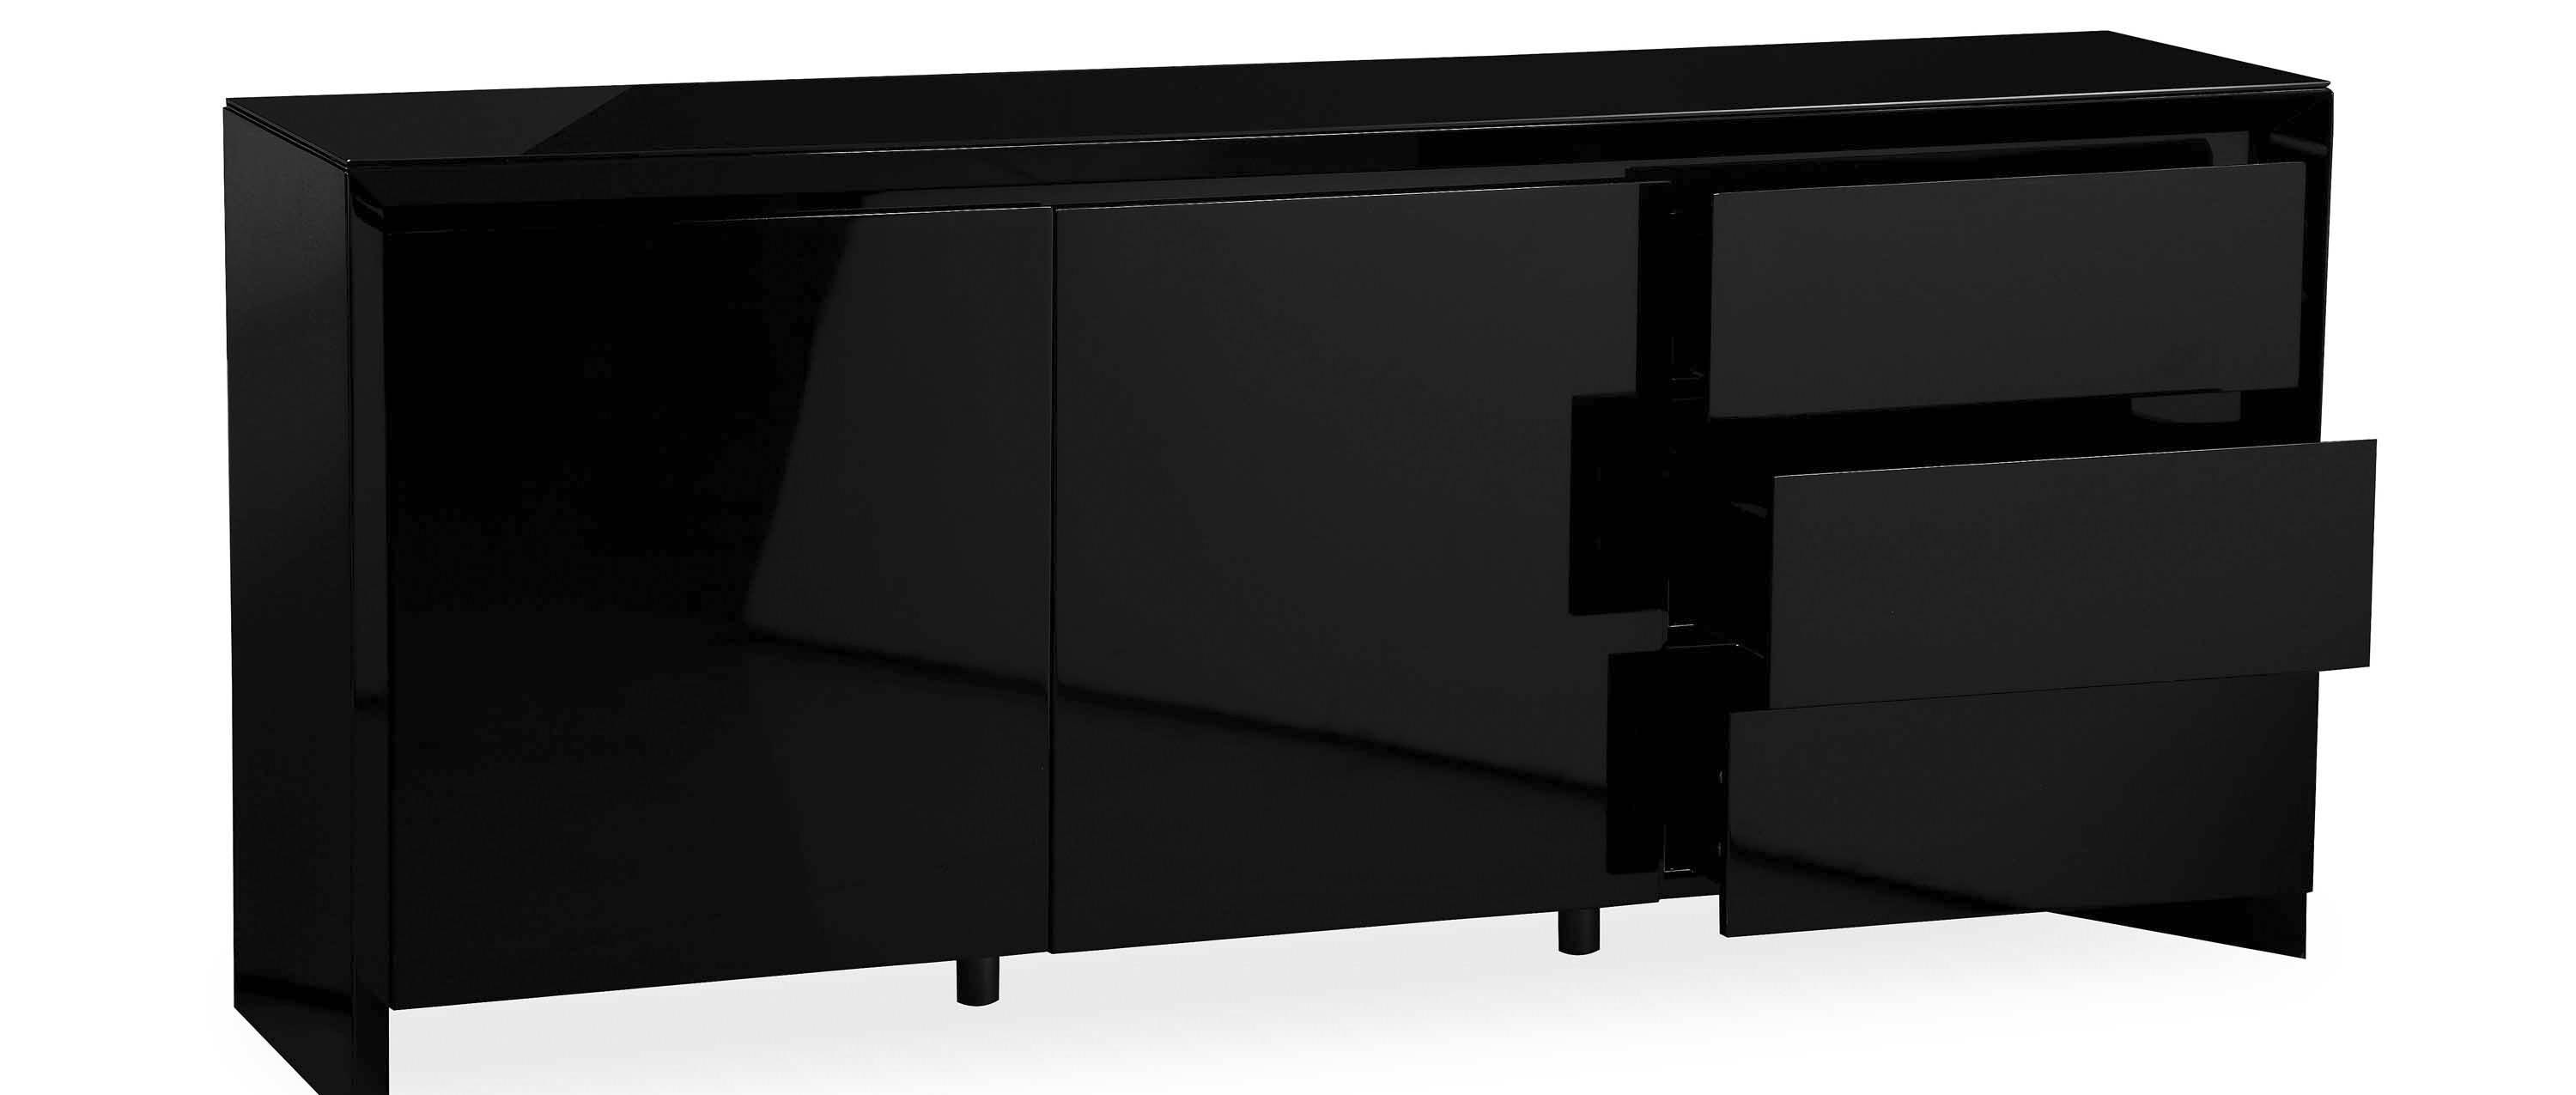 Soho – Extra Large Sideboard – Black High Gloss For Sideboard Black Gloss (#18 of 20)